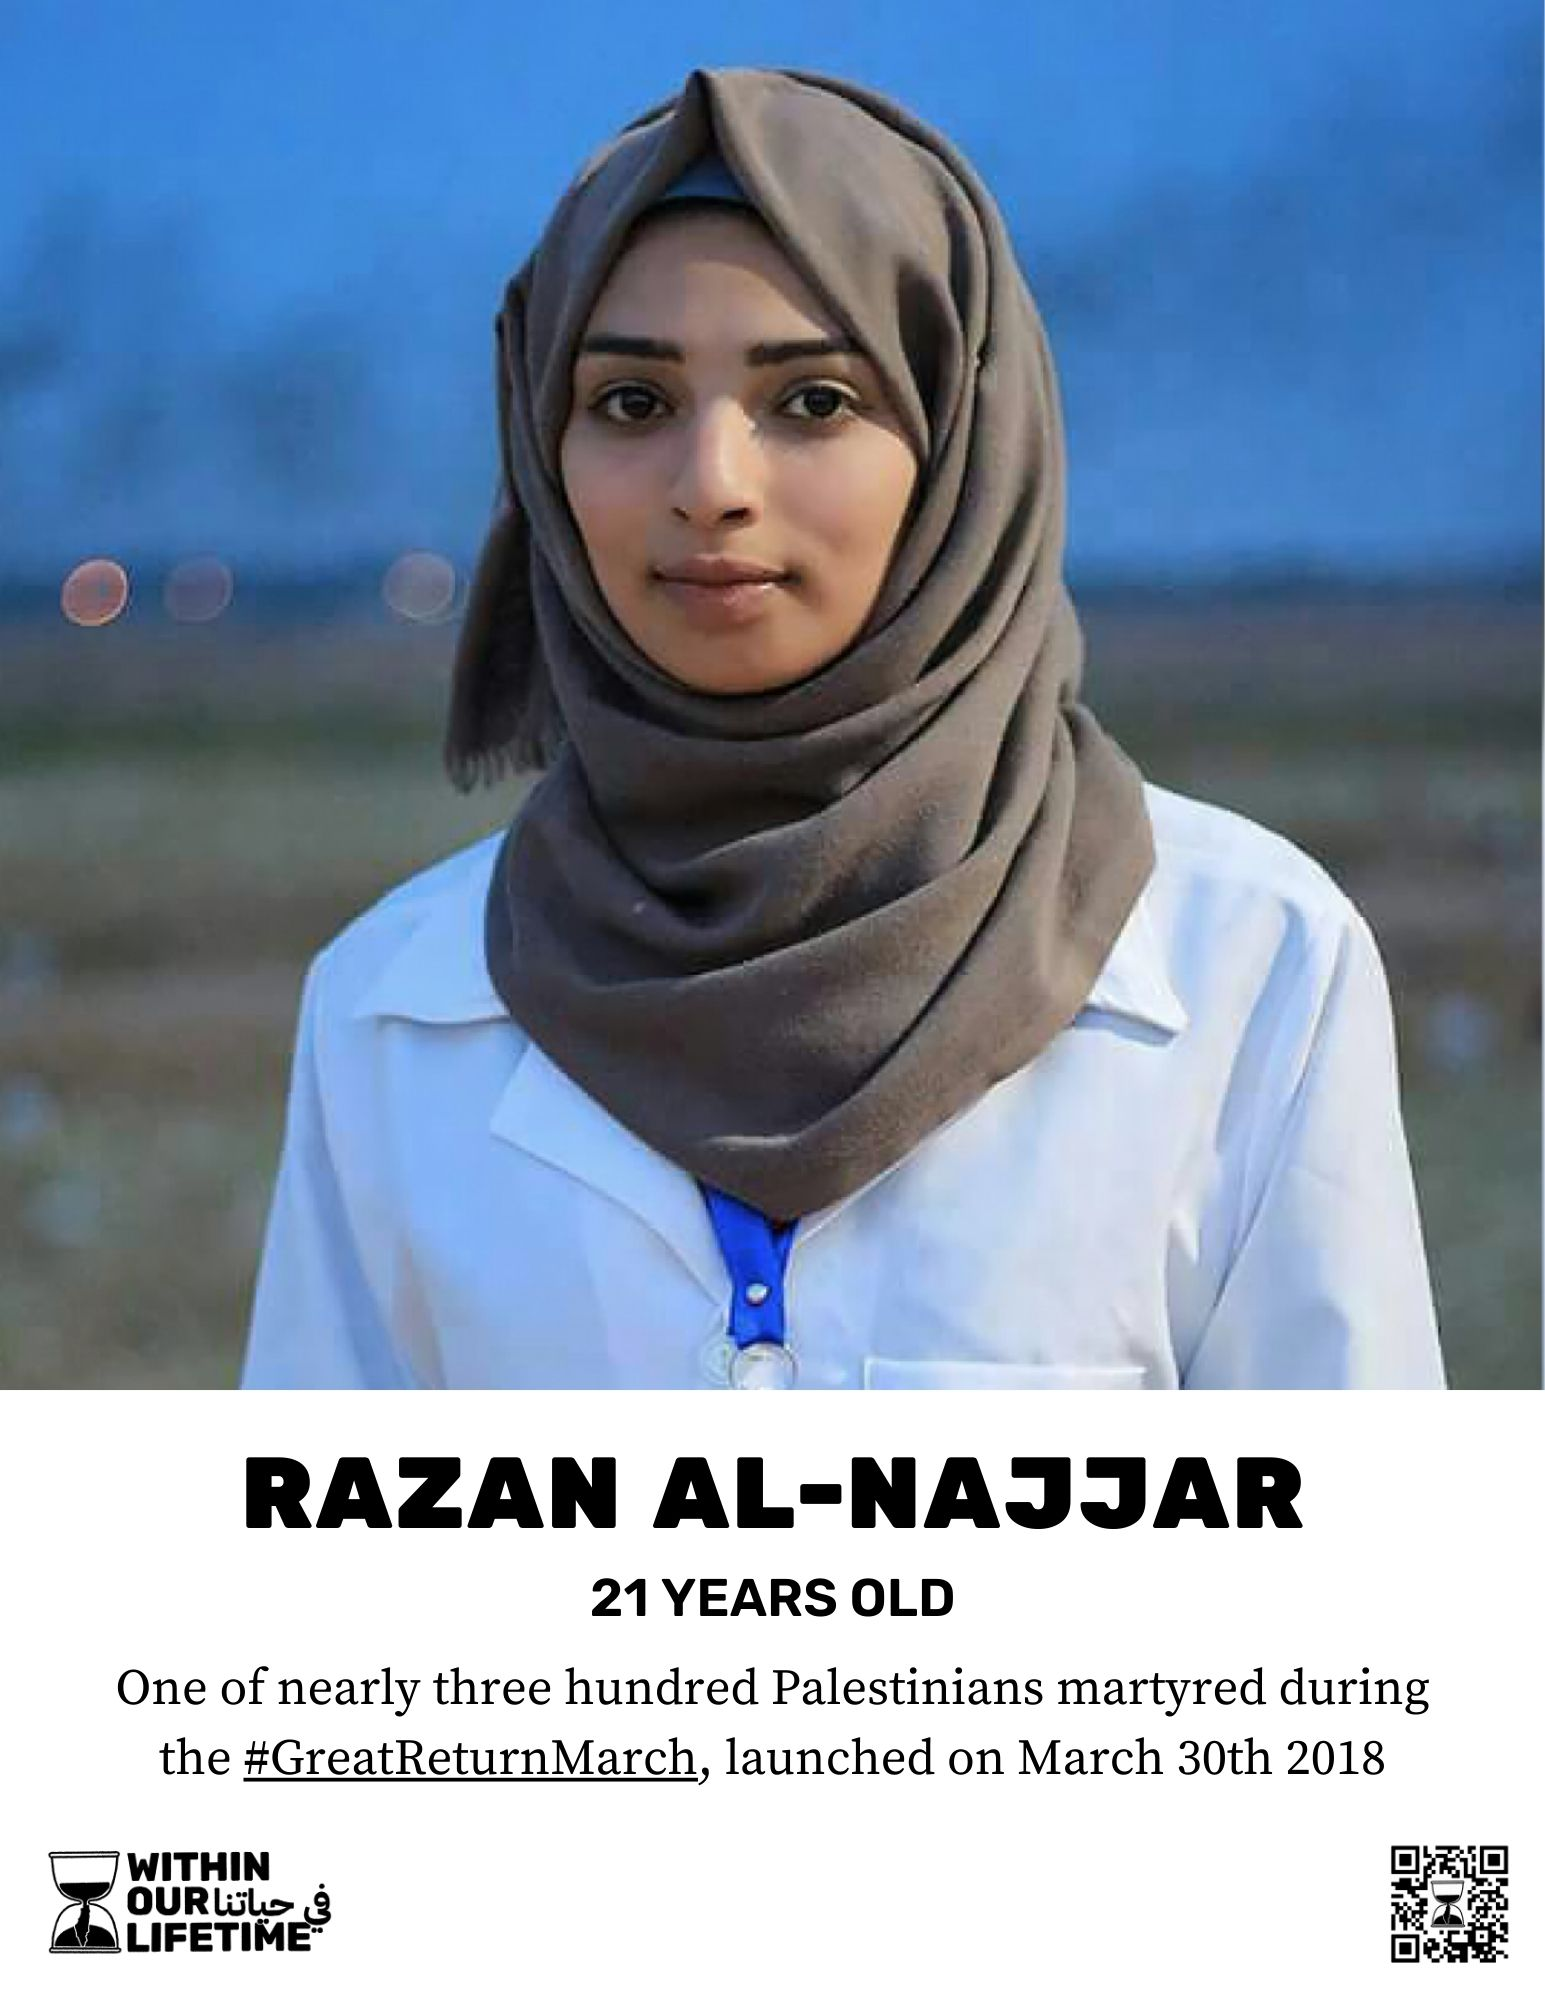 Razan Al-Najjar, 21 years old. One of nearly three hundred Palestinians martyred during the #GreatReturnMarch, launched on March 30th 2018.